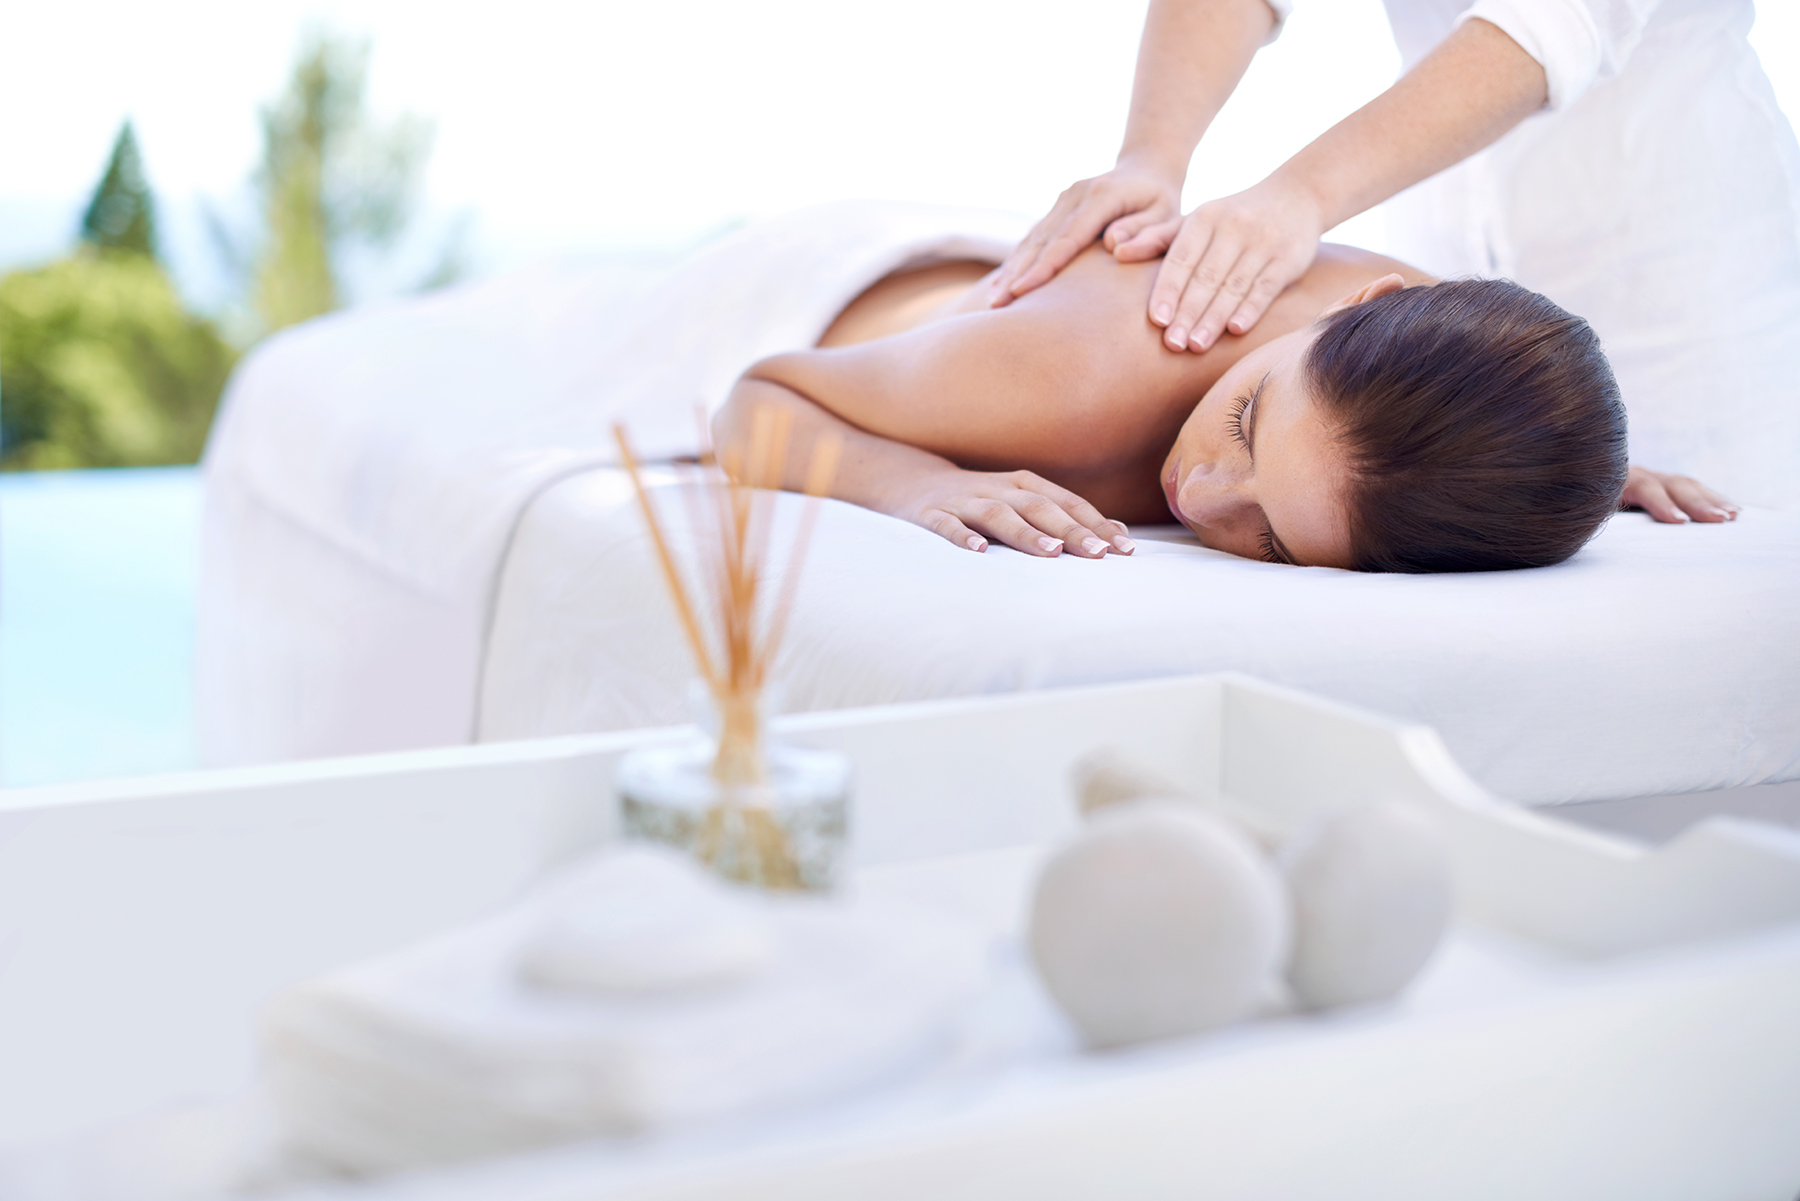 Massage Therapy and Spa: Enjoy the Power of the Right Touch